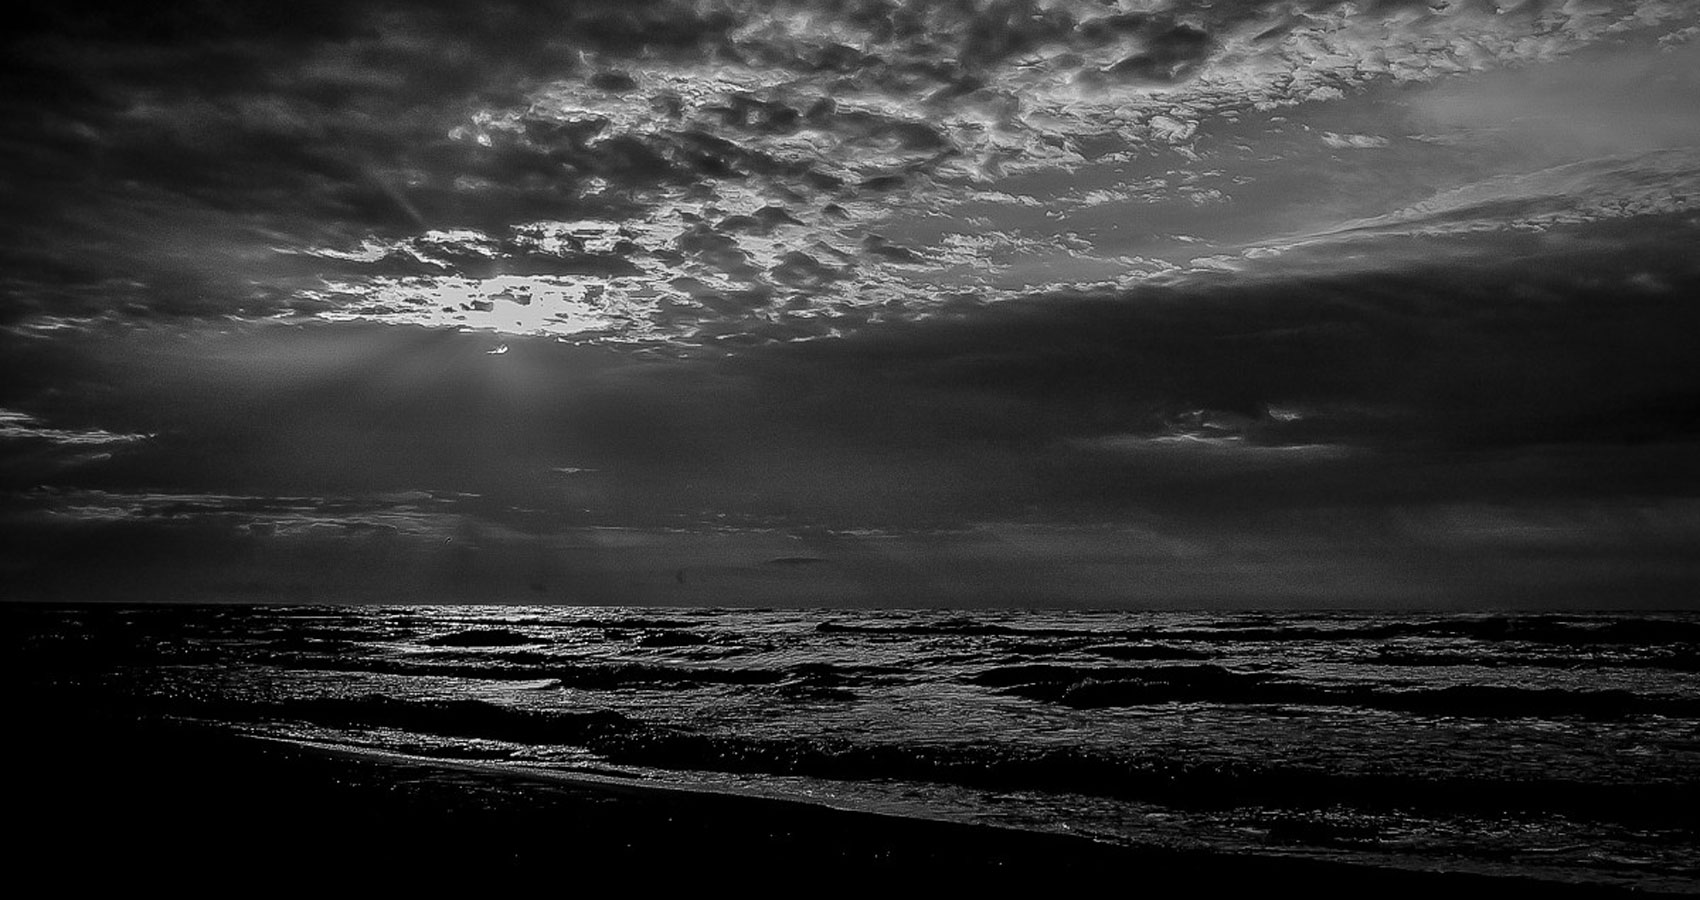 Darkness At The Sea by Lucretia T. Knight at Spillwords.com